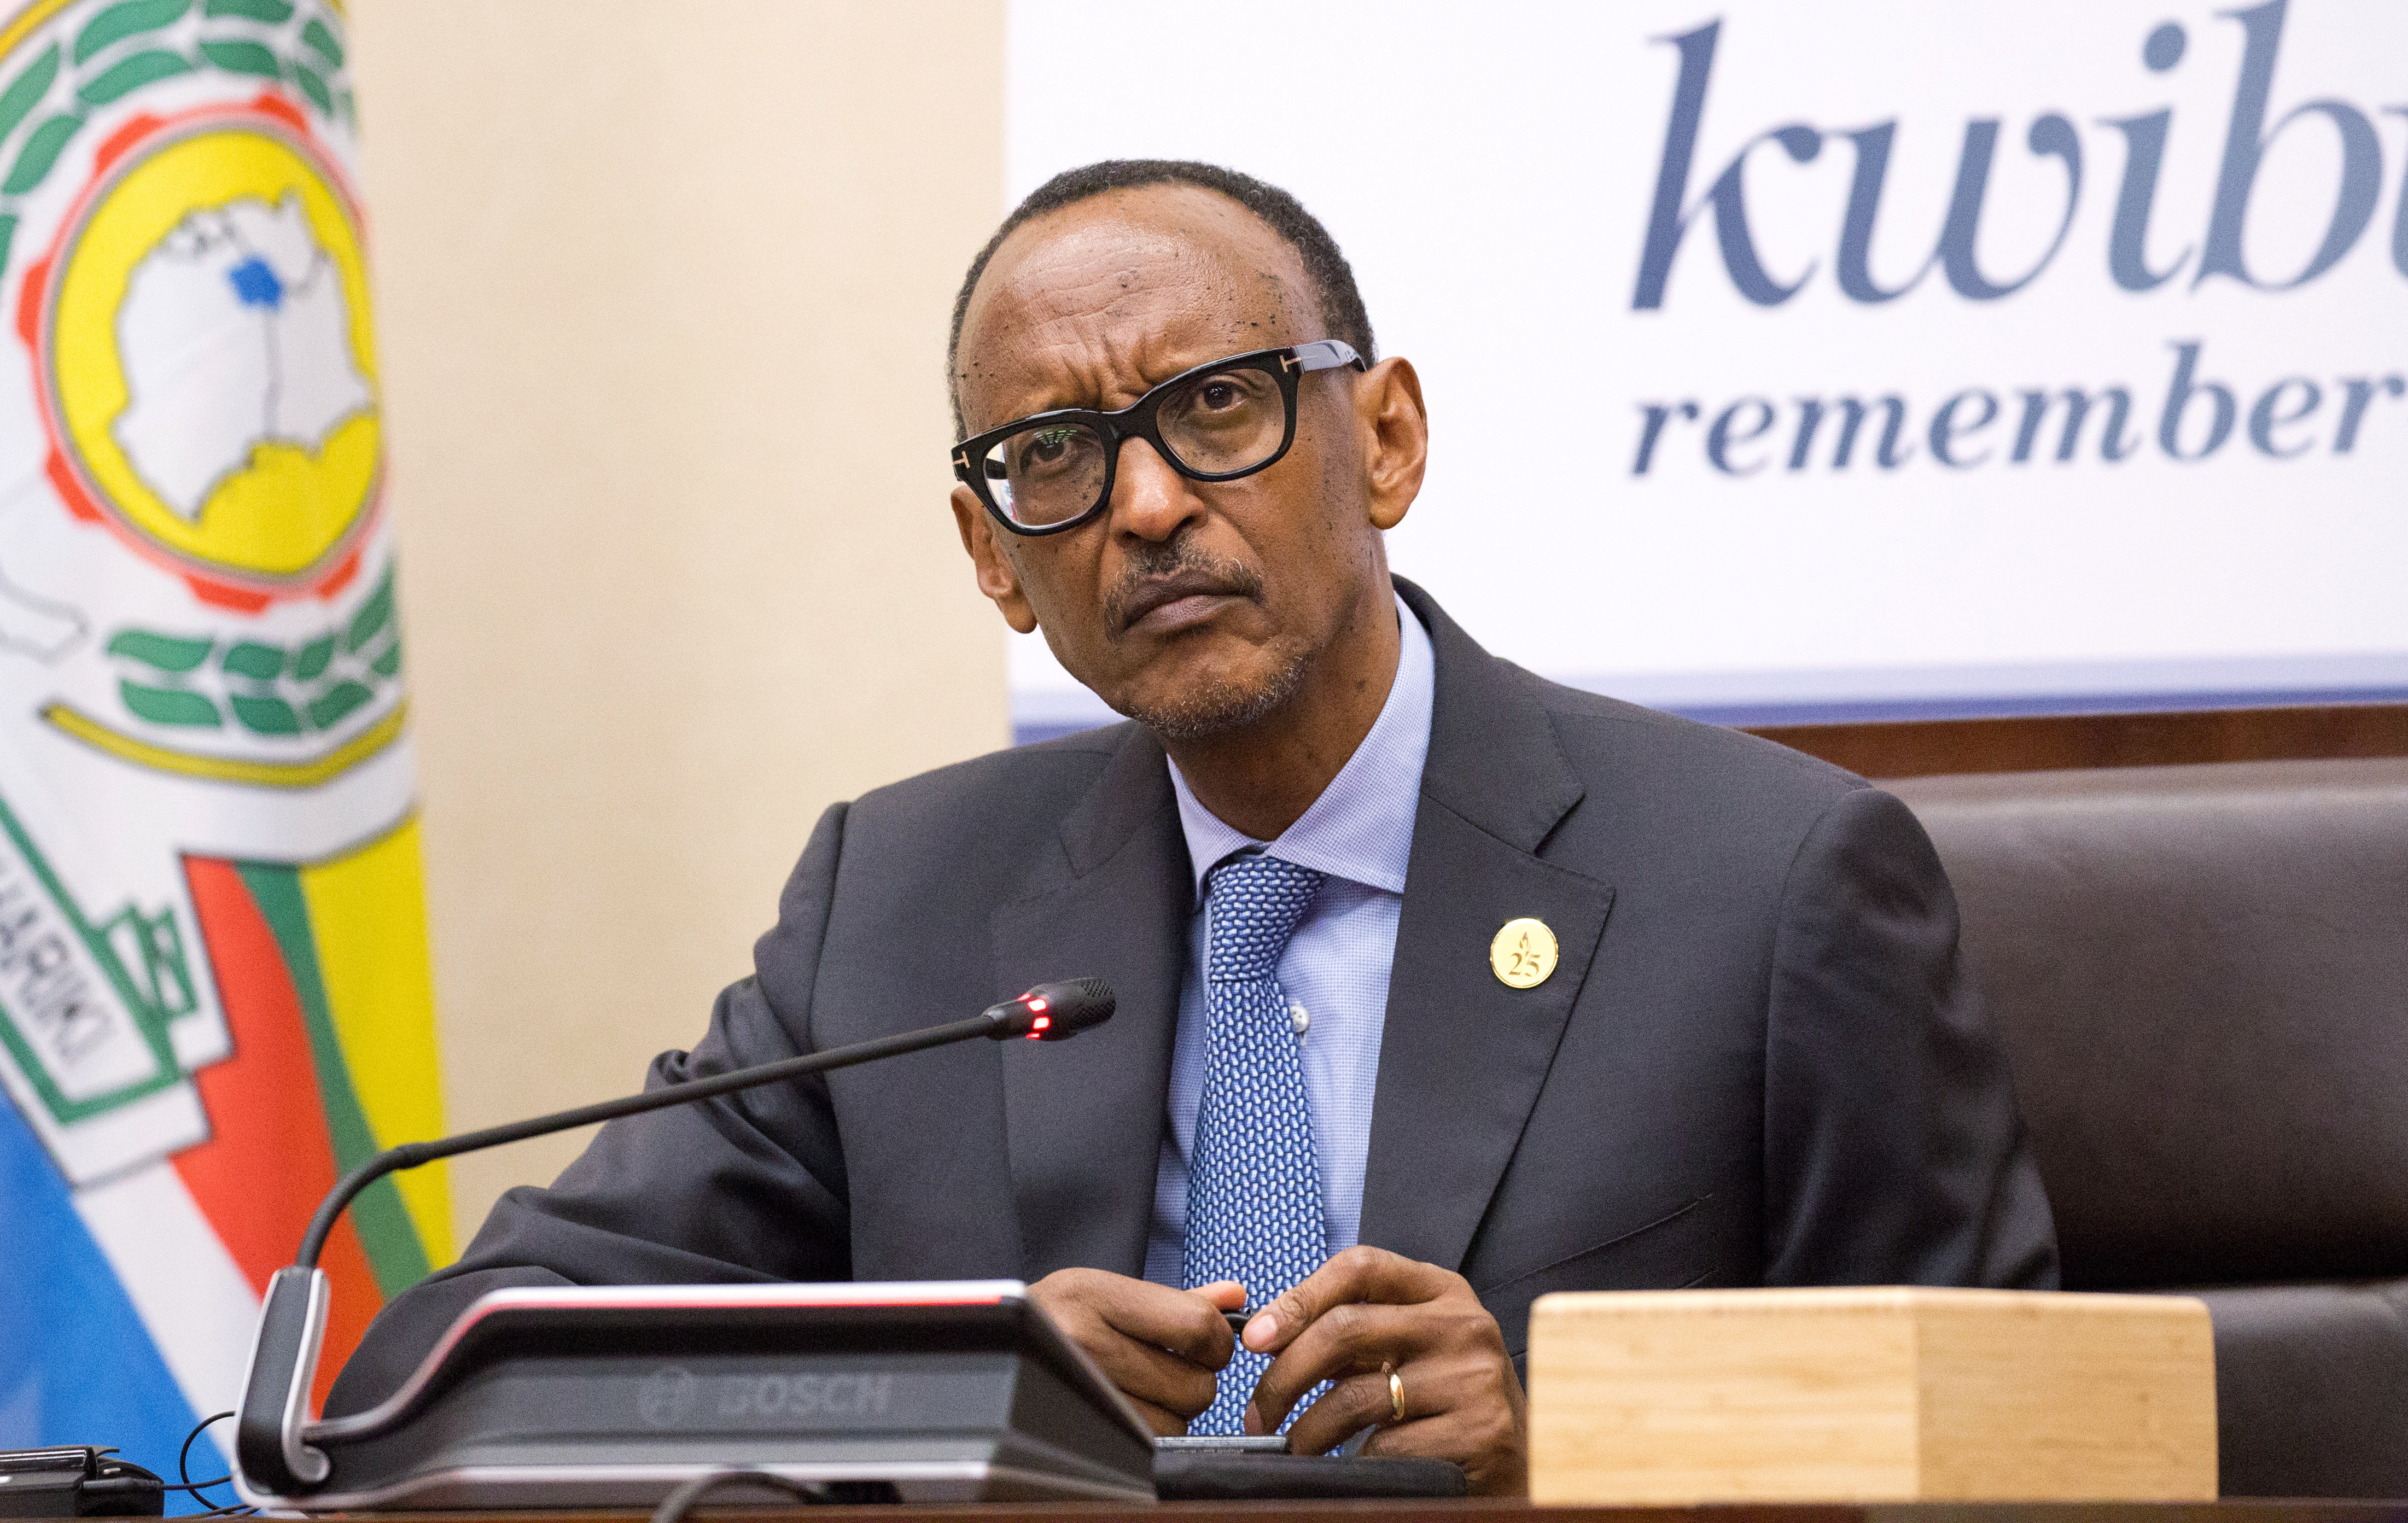 Rwanda's Paul Kagame has won plaudits for his audacious and determined efforts to pursue reforms and transform the nation's economy. Photo: Reuters